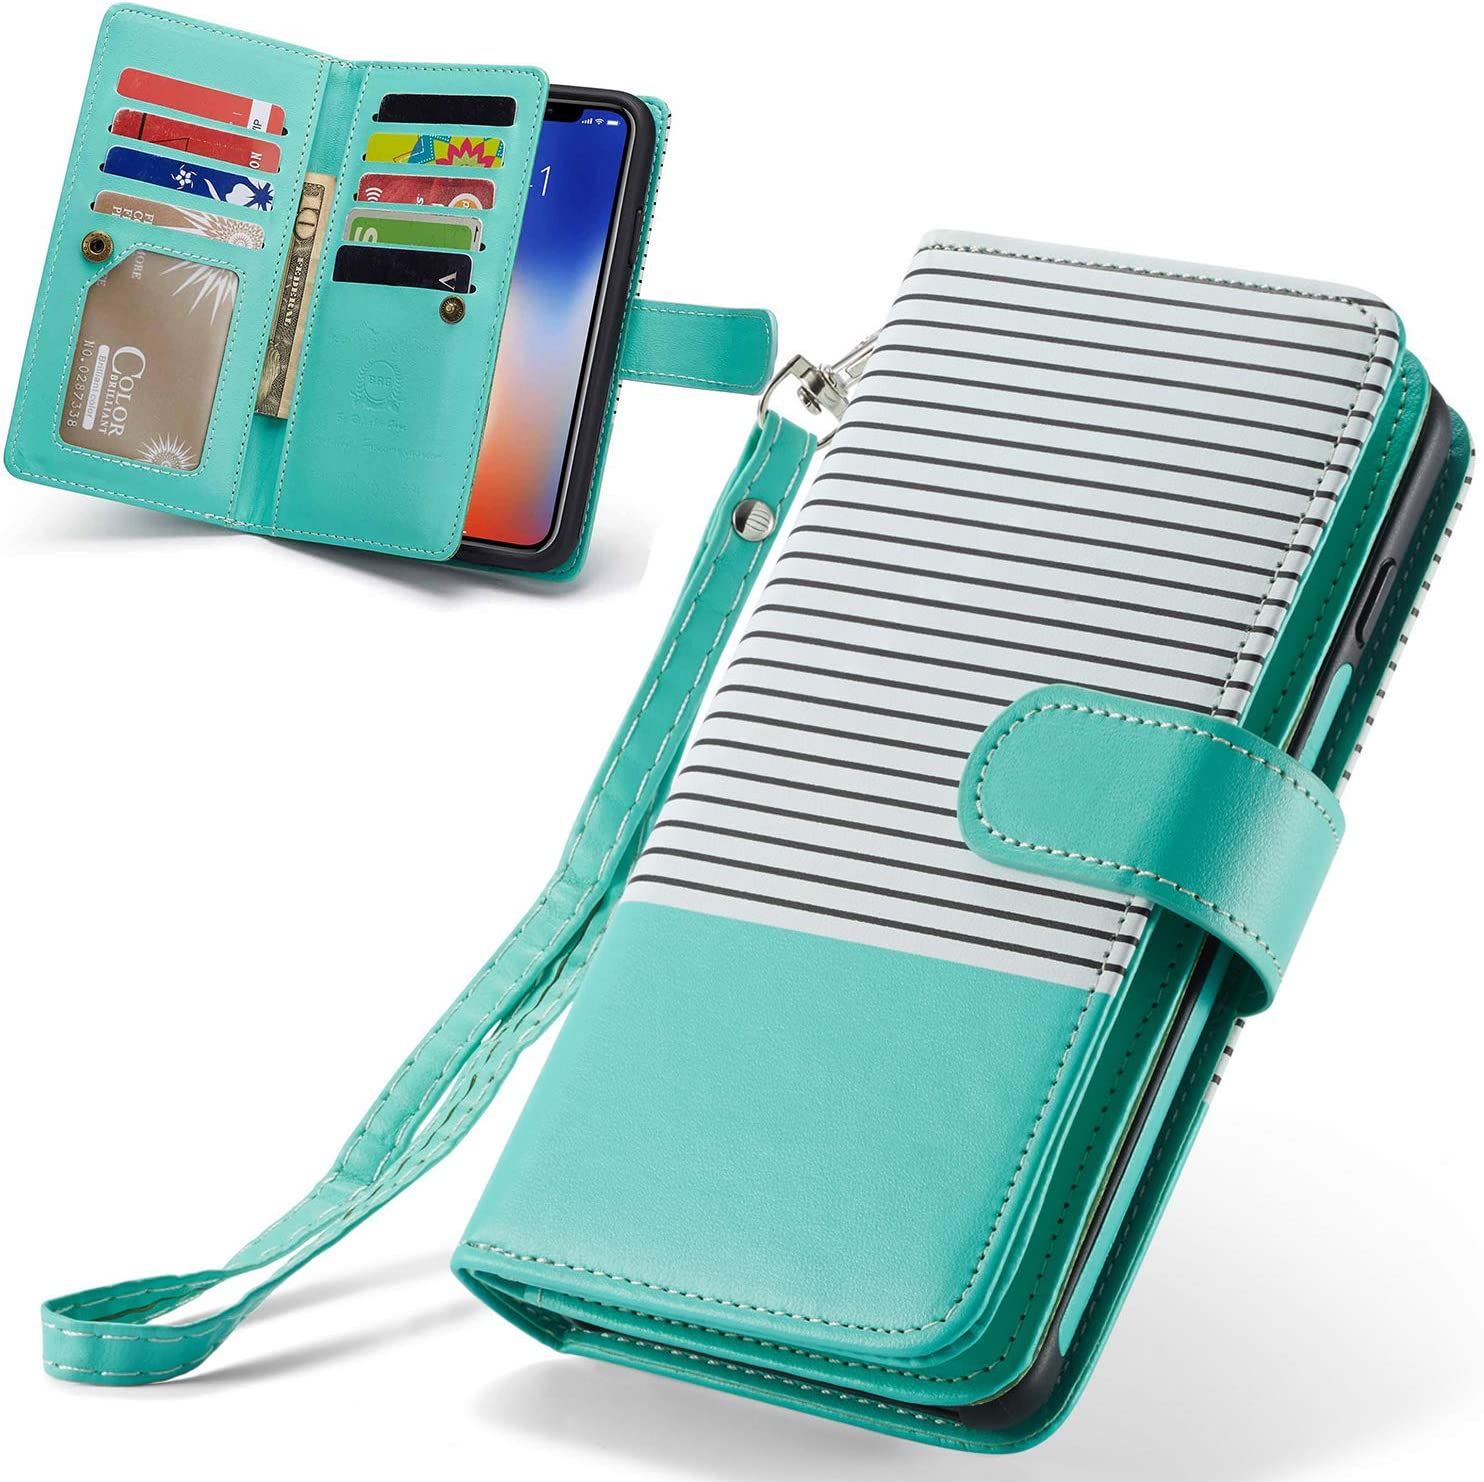 XRPow iPhone XR Case, [2 in 1] iPhone XR Magnetic Detachable Wallet Case [PU Leather] Folio Flip [9 Card Slot] [Wrist Strap] Durable Protection Back Cover for iPhone XR 6.1Inch (Green)